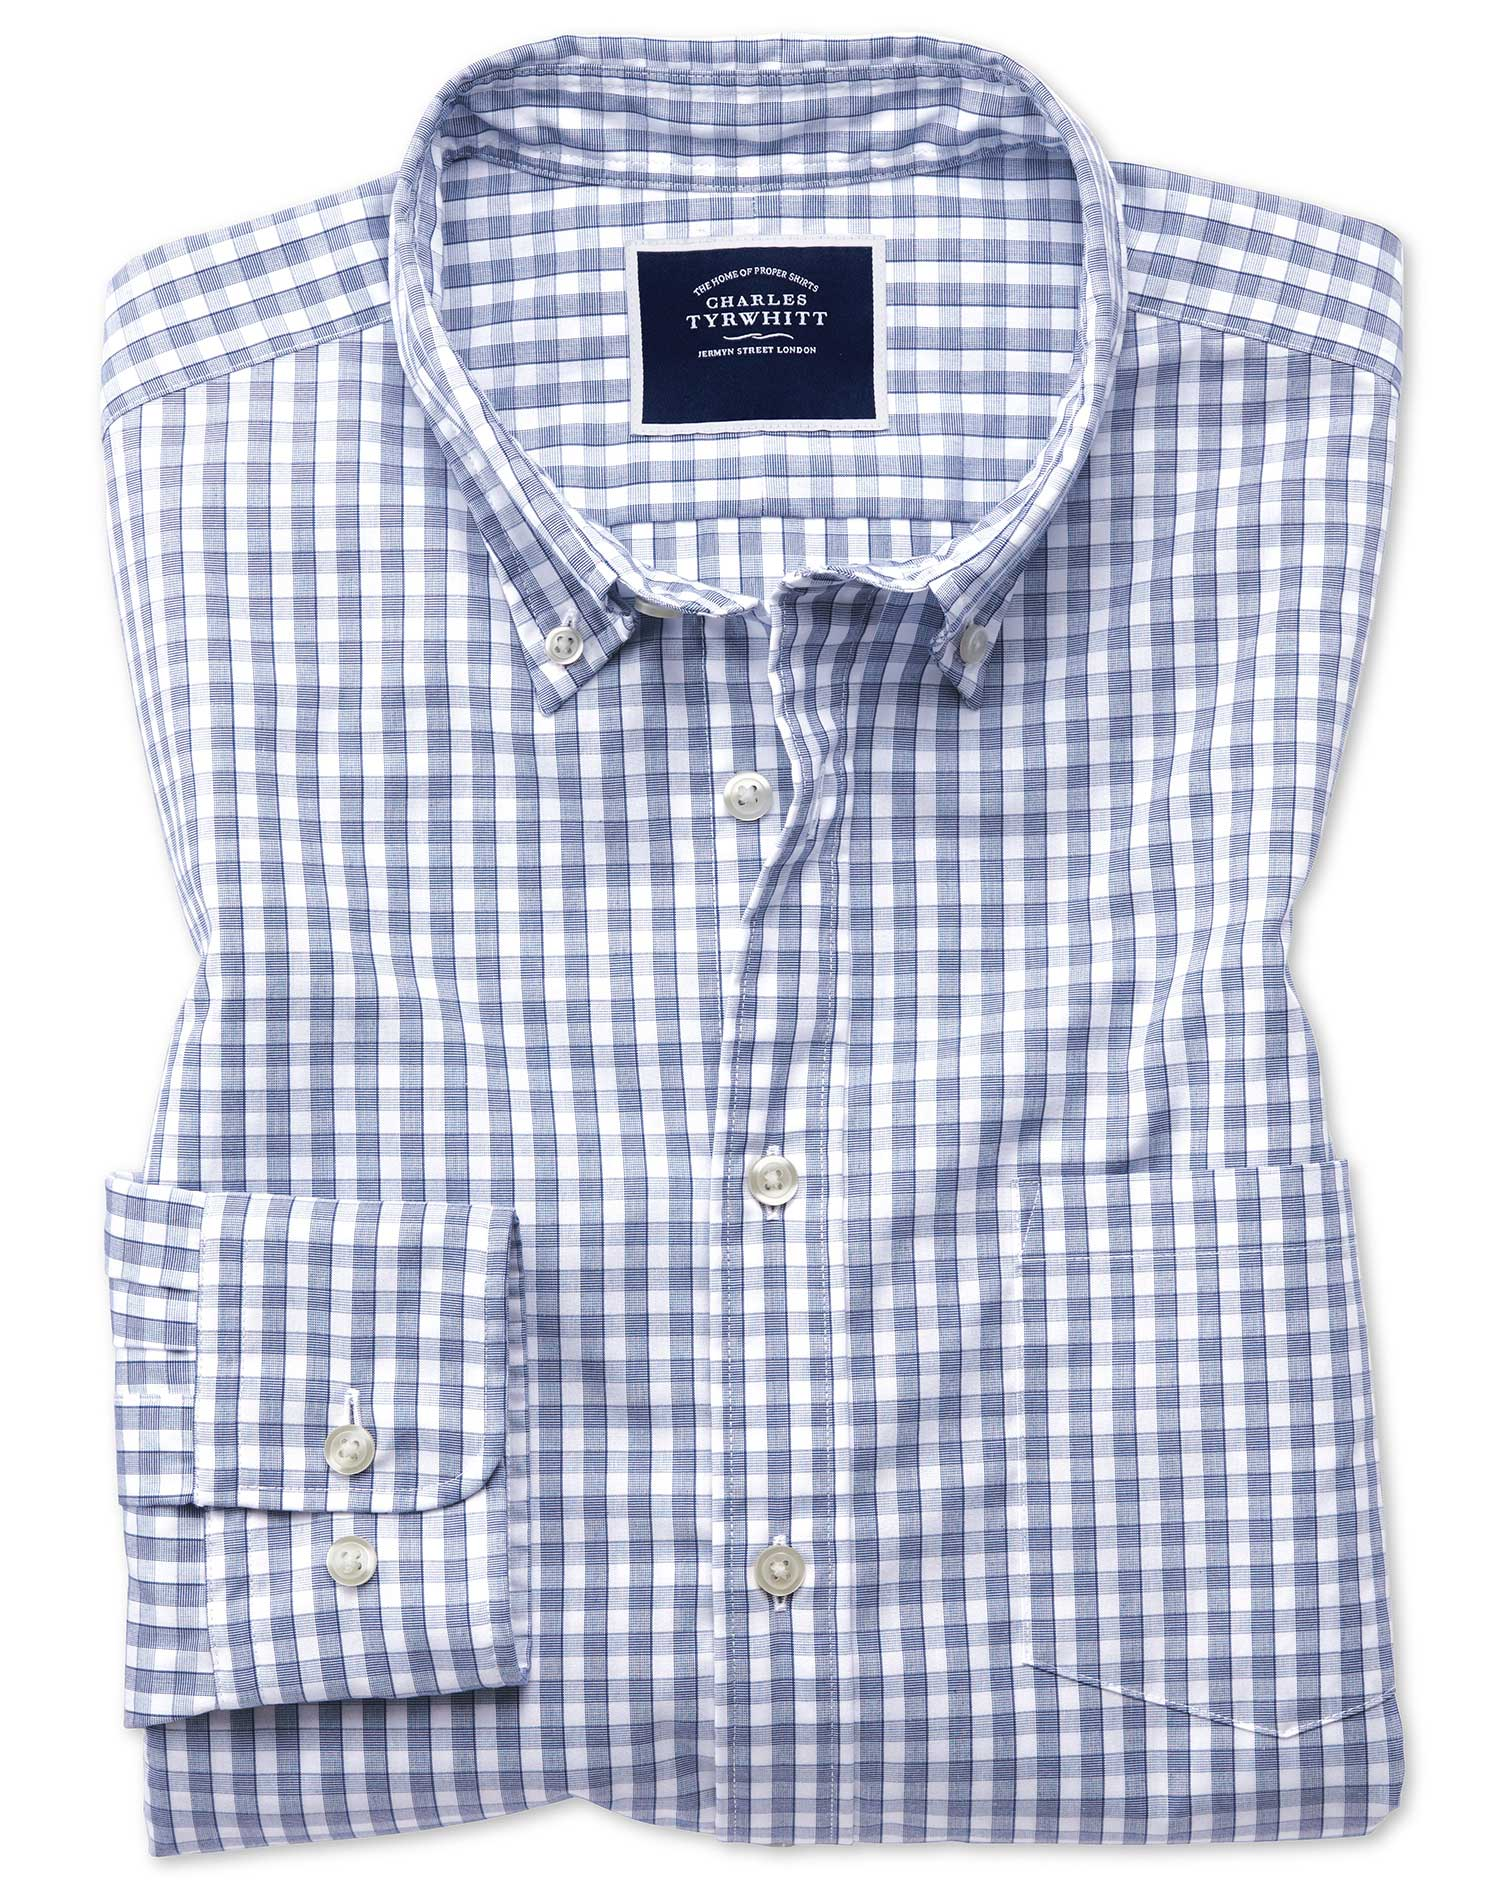 Slim Fit Navy Gingham Soft Washed Non-Iron Tyrwhitt Cool Cotton Shirt Single Cuff Size Medium by Cha